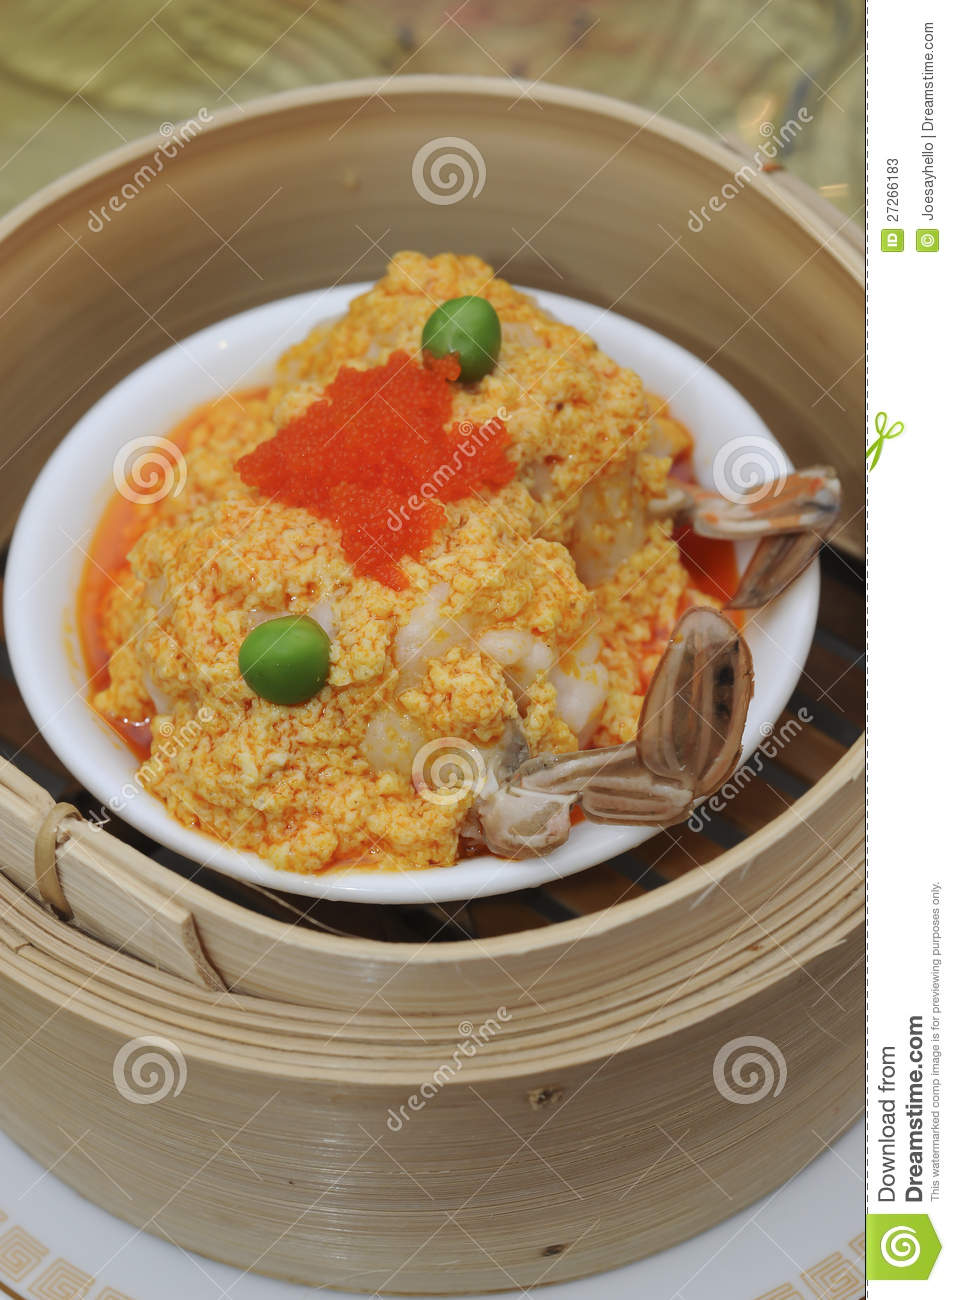 Asian cuisine menu stock photos image 27266183 for Azian cuisine menu